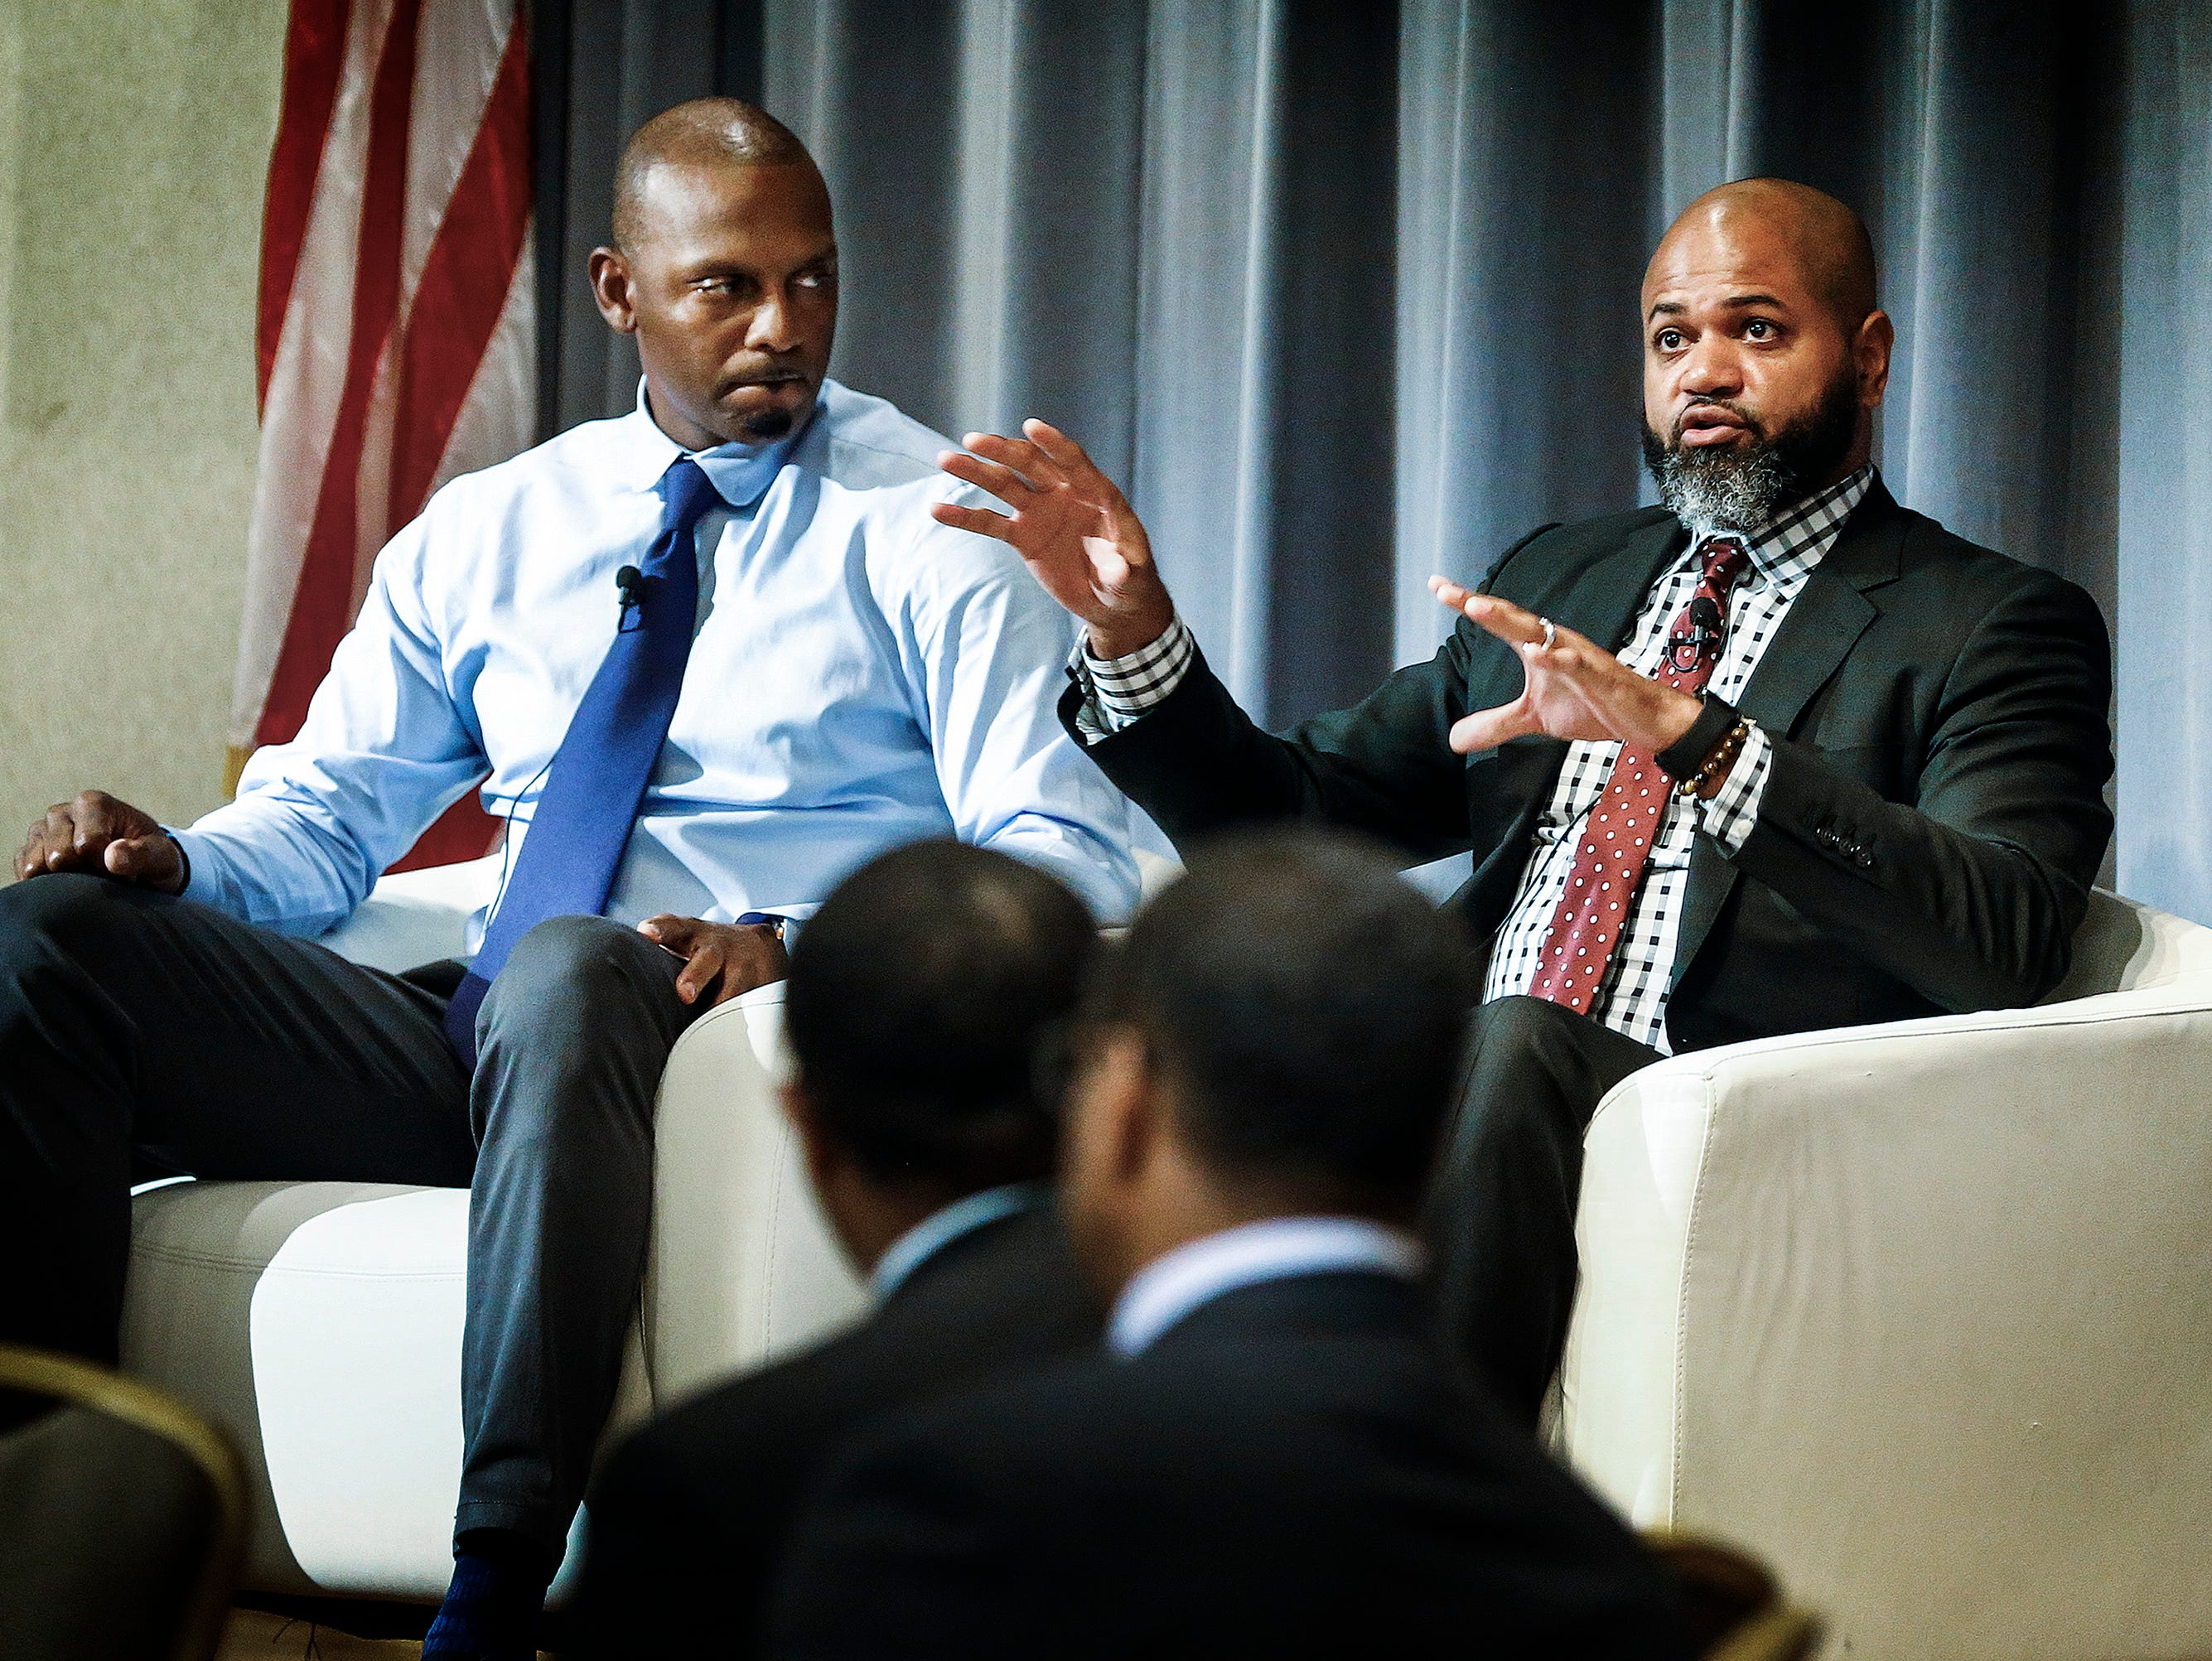 University of Memphis head basketball coach Penny Hardaway (left) and Memphis Grizzlies head coach J.B. Bickerstaff (right) were the featured guests at the Memphis Chambers The Game Plan of Memphis Basketball event  on Sept. 5, 2018.